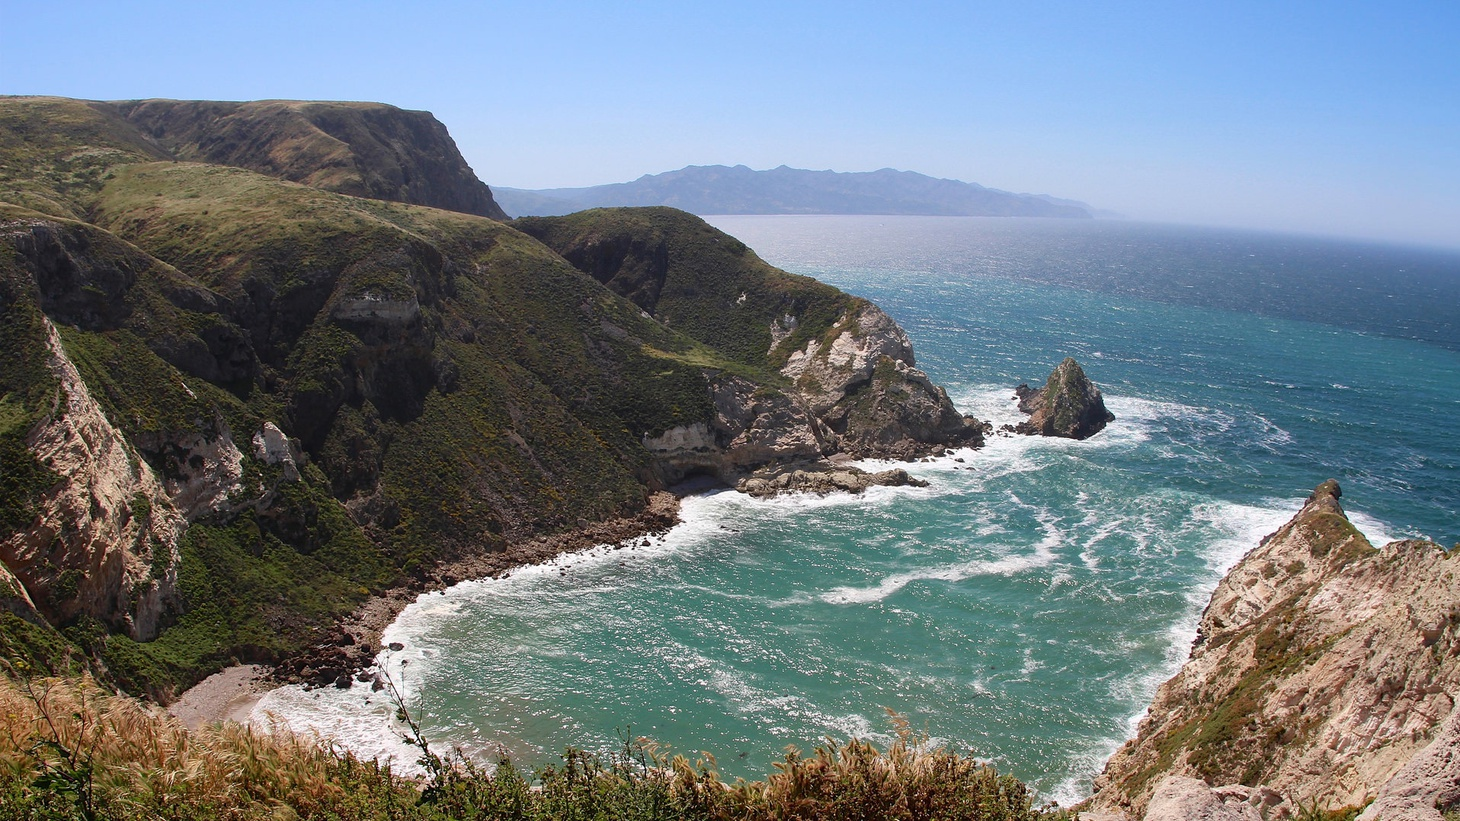 According to the National Park Service, visitors to the Channel Islands National Park increased by 13 percent in 2016. KCRW listener Anastasia Poland from Ventura wanted to know why.